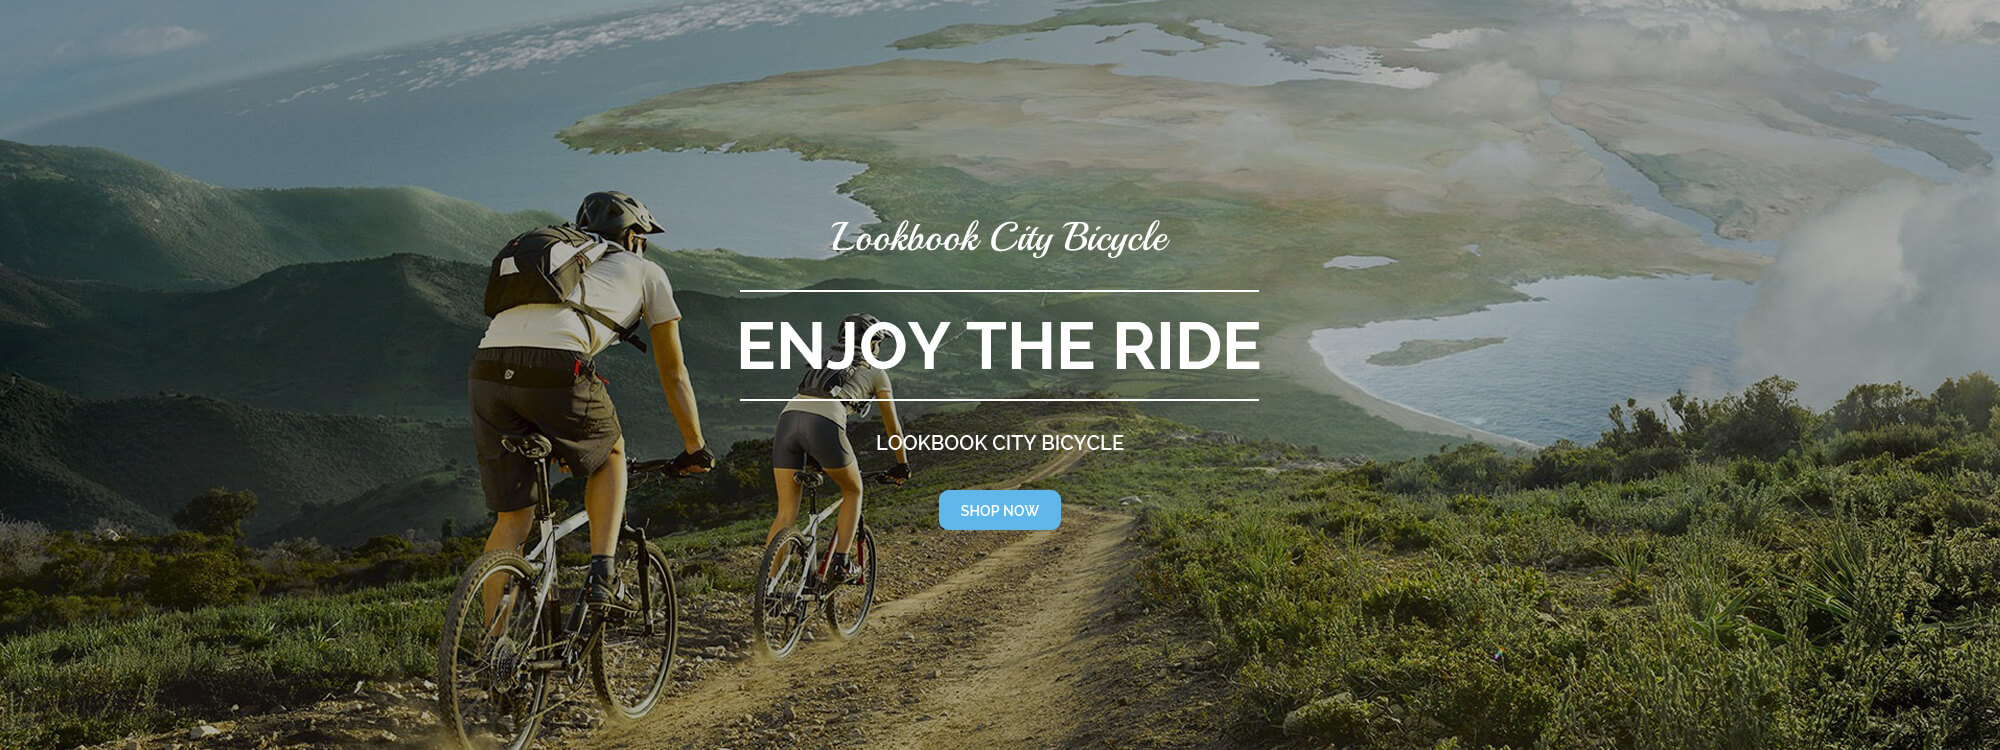 Lookbook City Bicycle